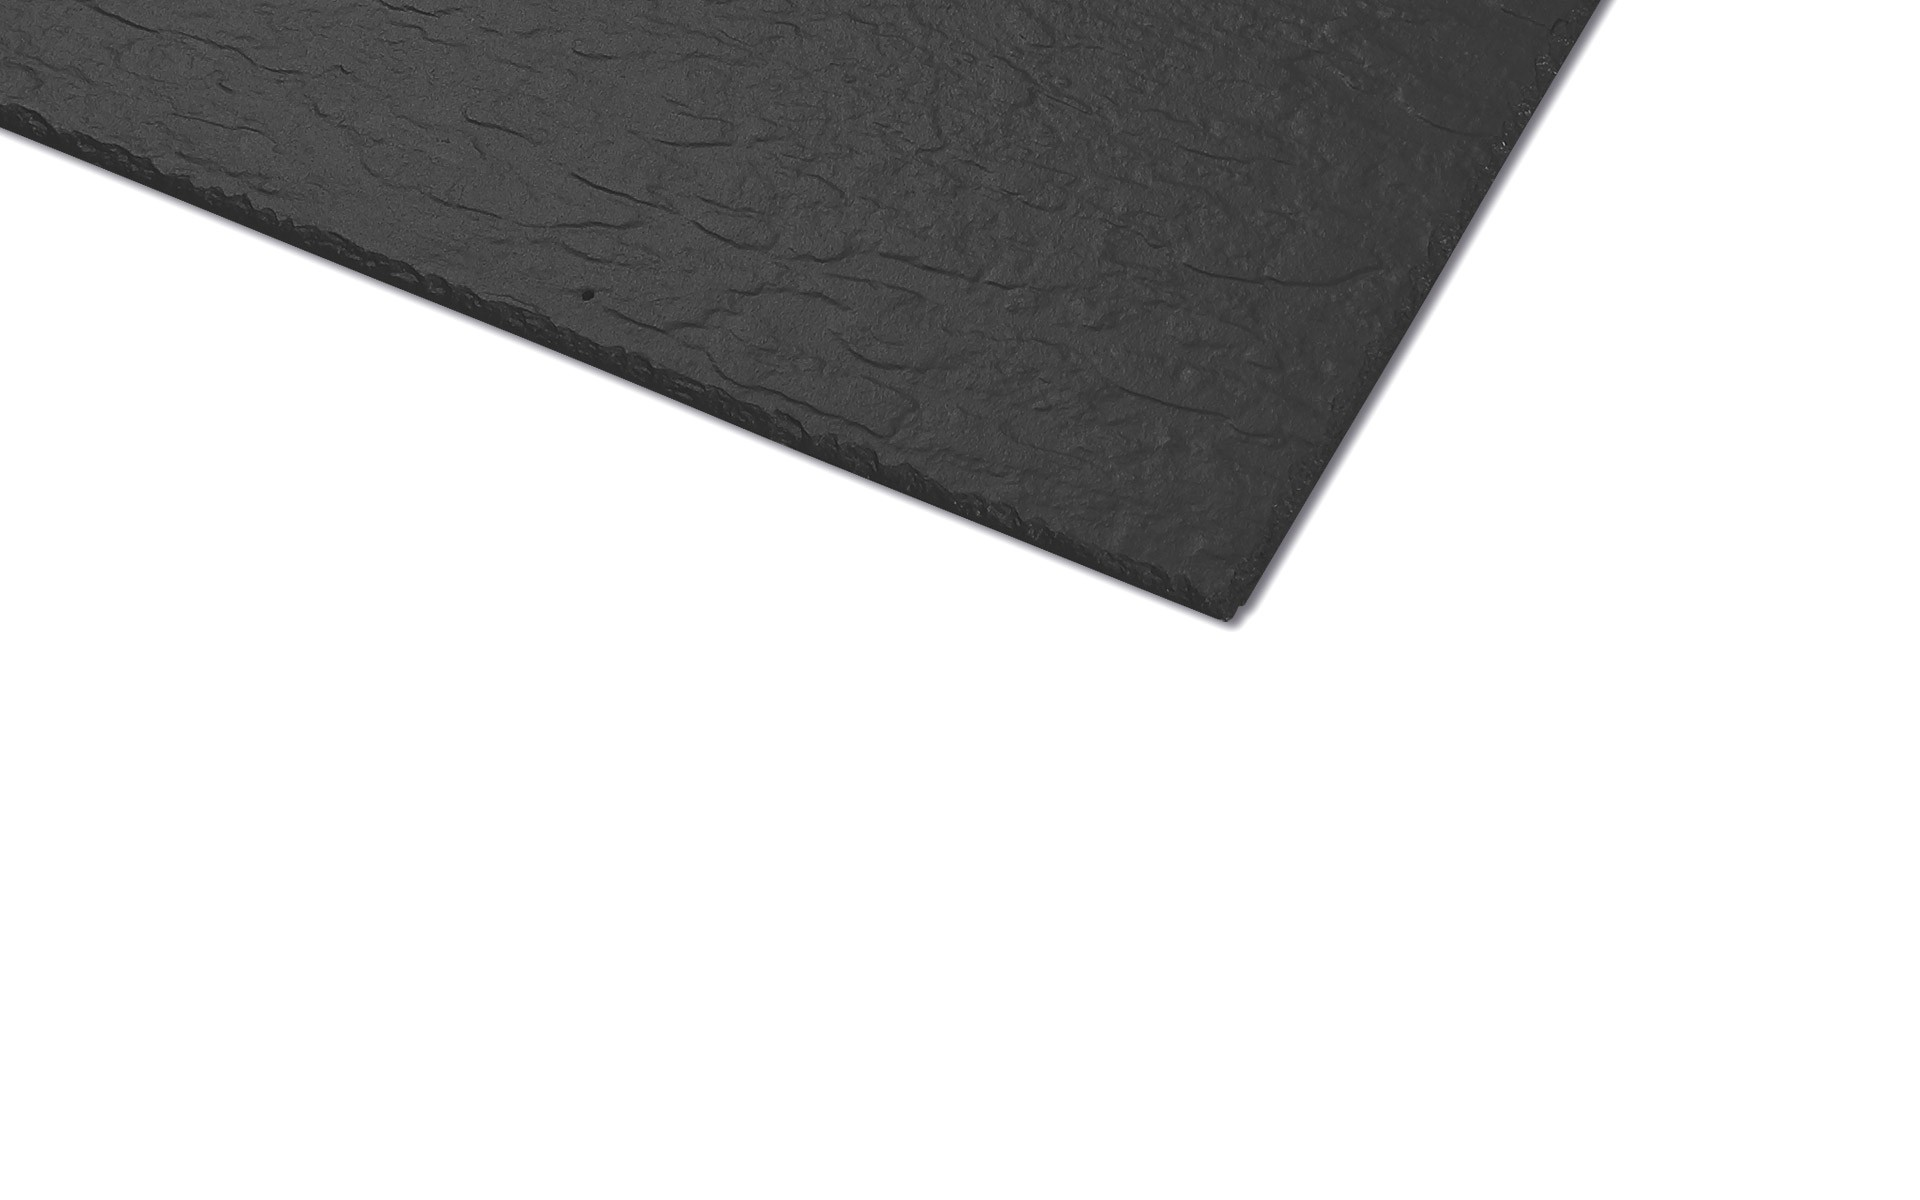 Fibre Slate Westerland Riven 600 x600mm - Graphite, Blue Black, Slate Welsh Blue